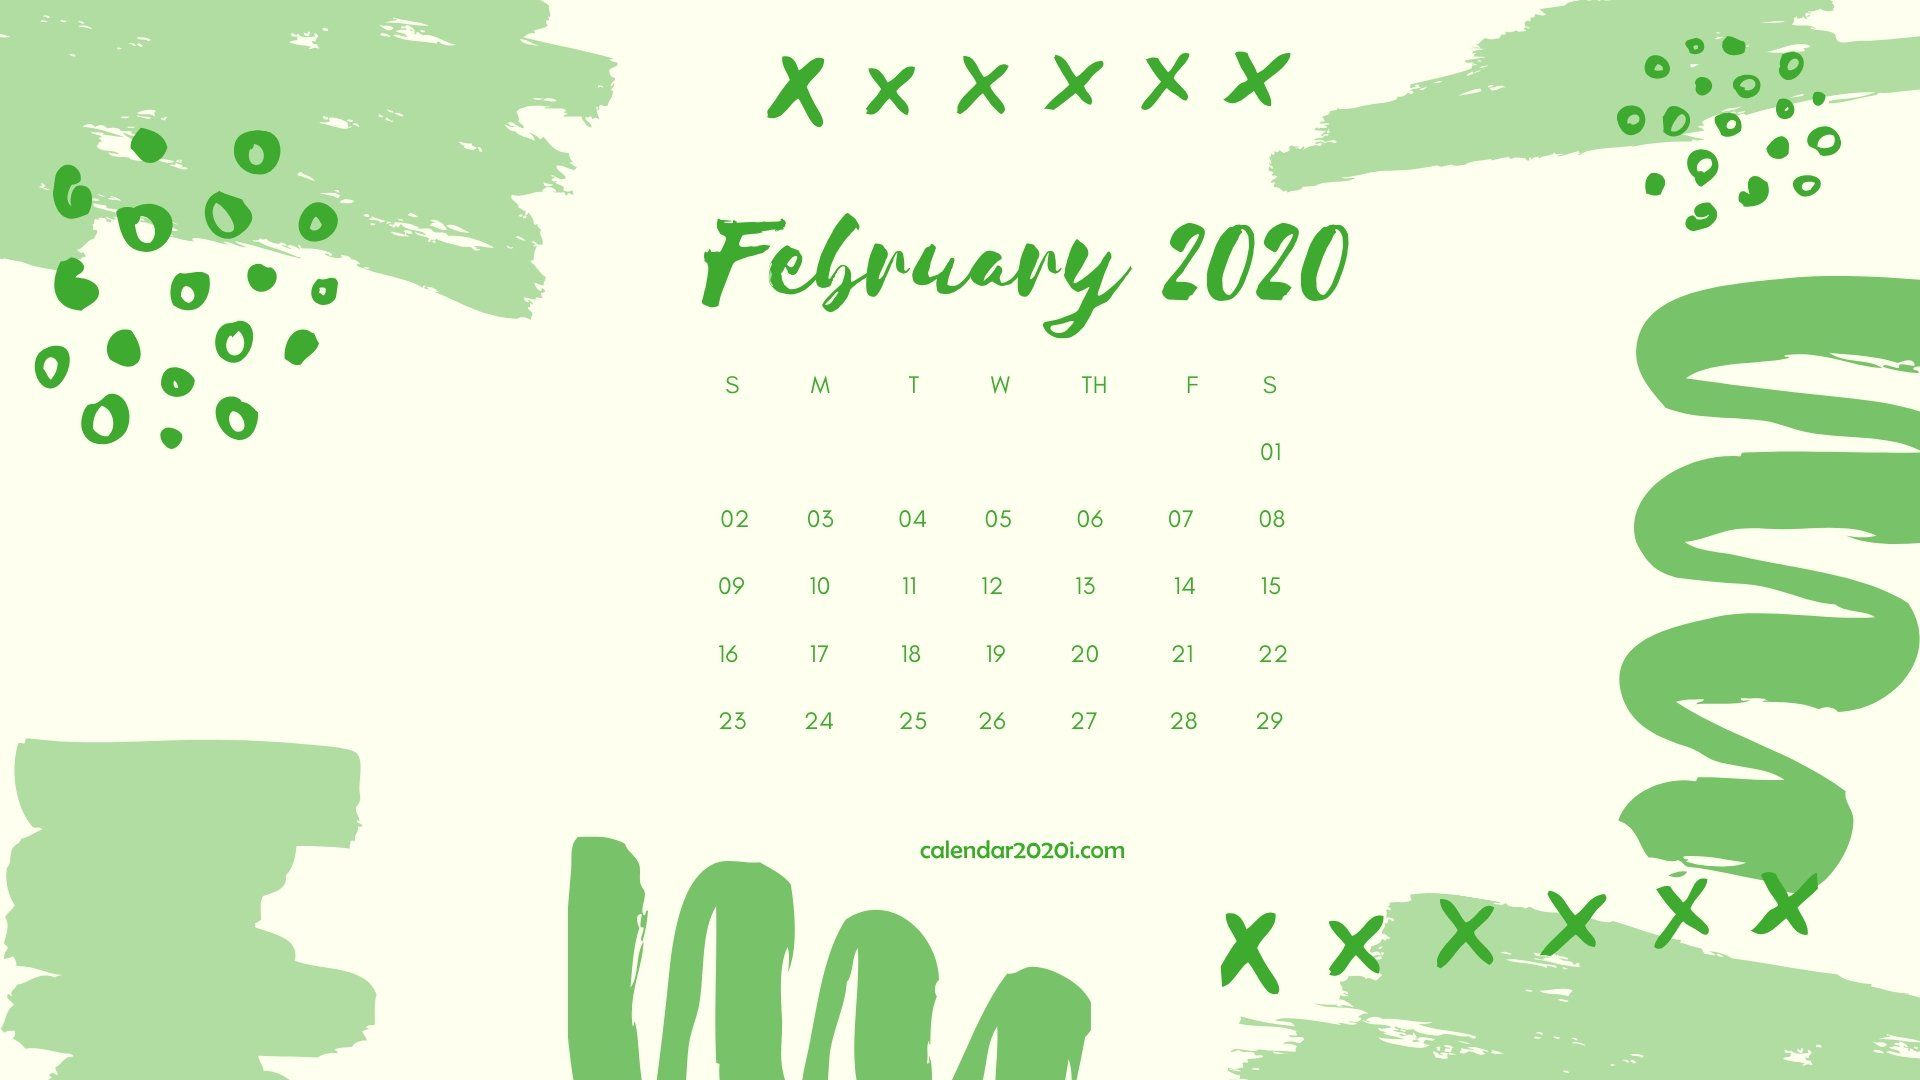 February 2020 Calendar Desktop Wallpaper Printable calendar 1920x1080